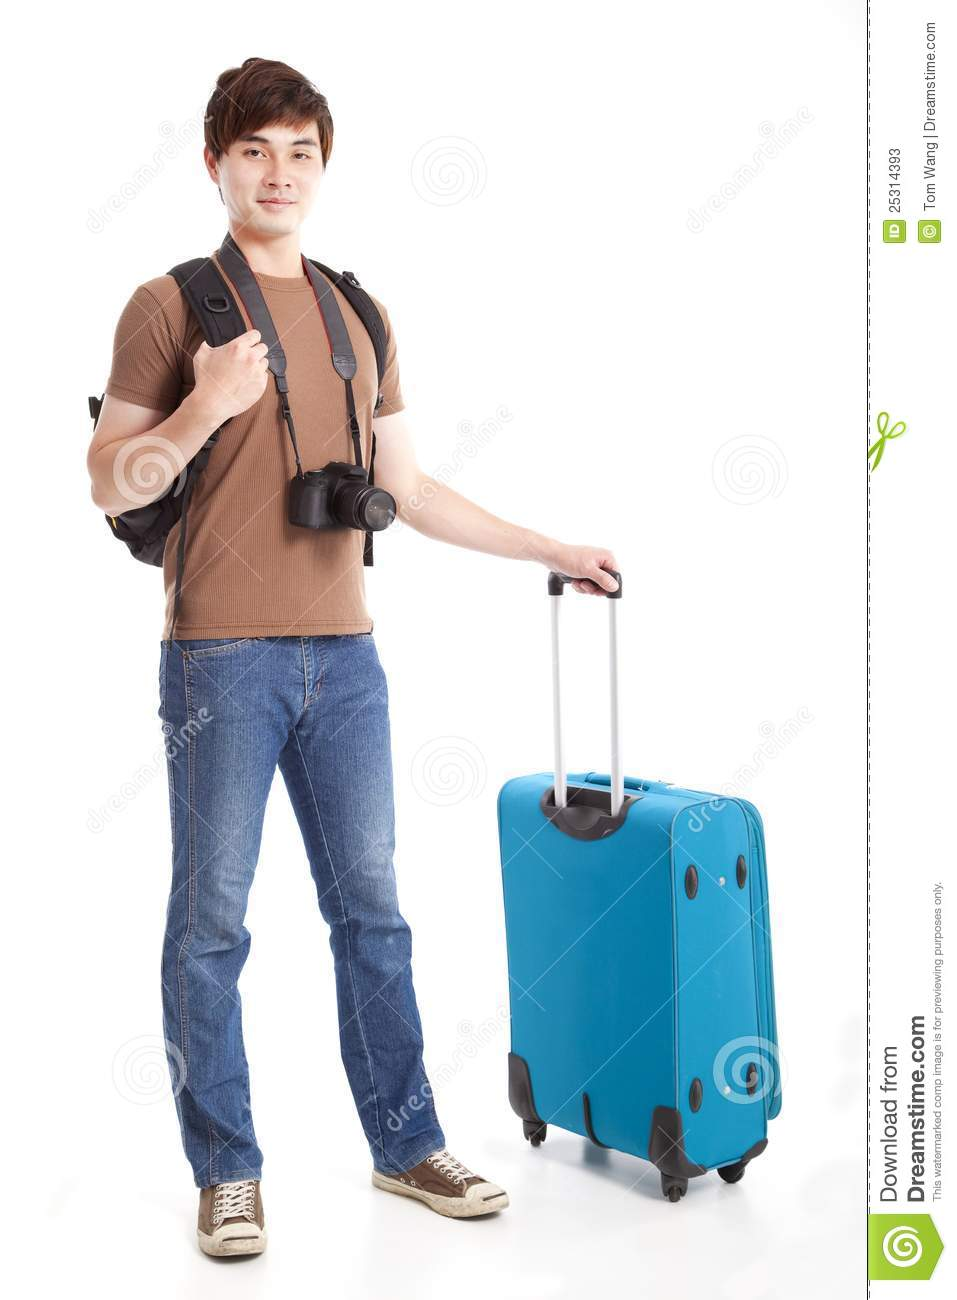 Upcycled Skateboard Backpack With Screen in addition Jokes together with K9countermeasures equipment likewise Businessman Clipart Free together with File MePhone Season 2. on cell phone with suitcase